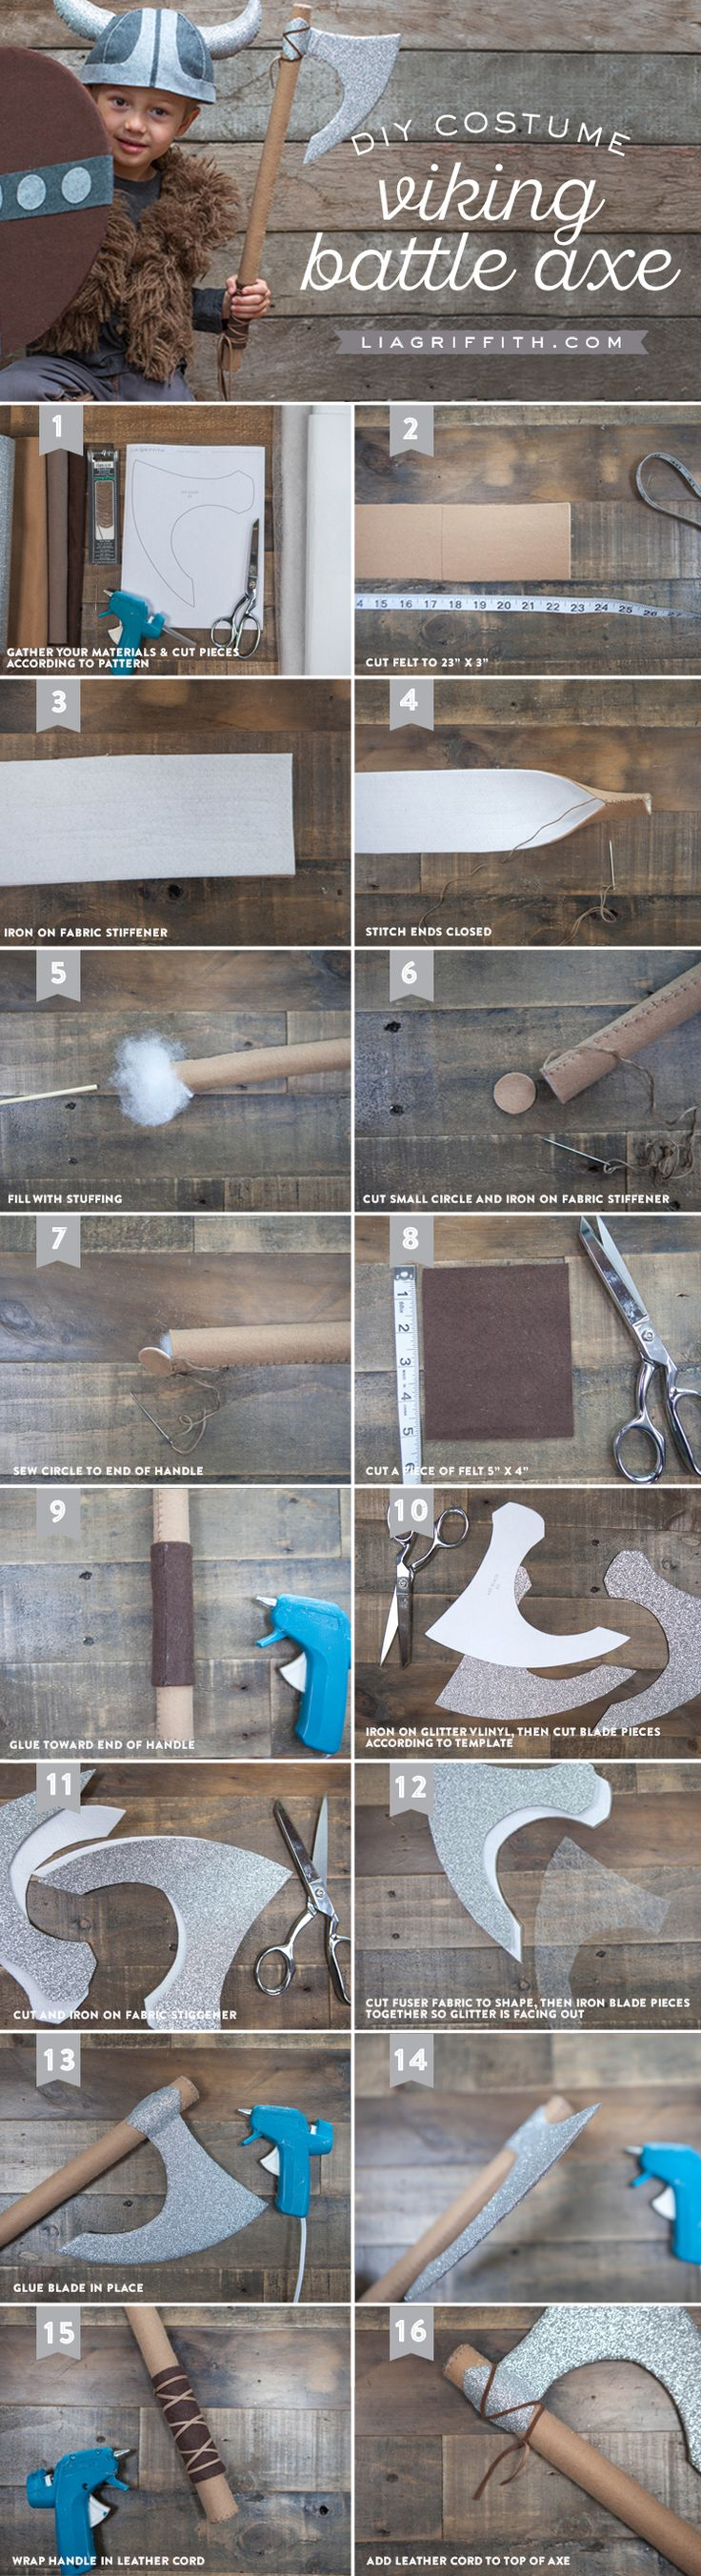 Accessories for DIY Kid�s Viking Costume